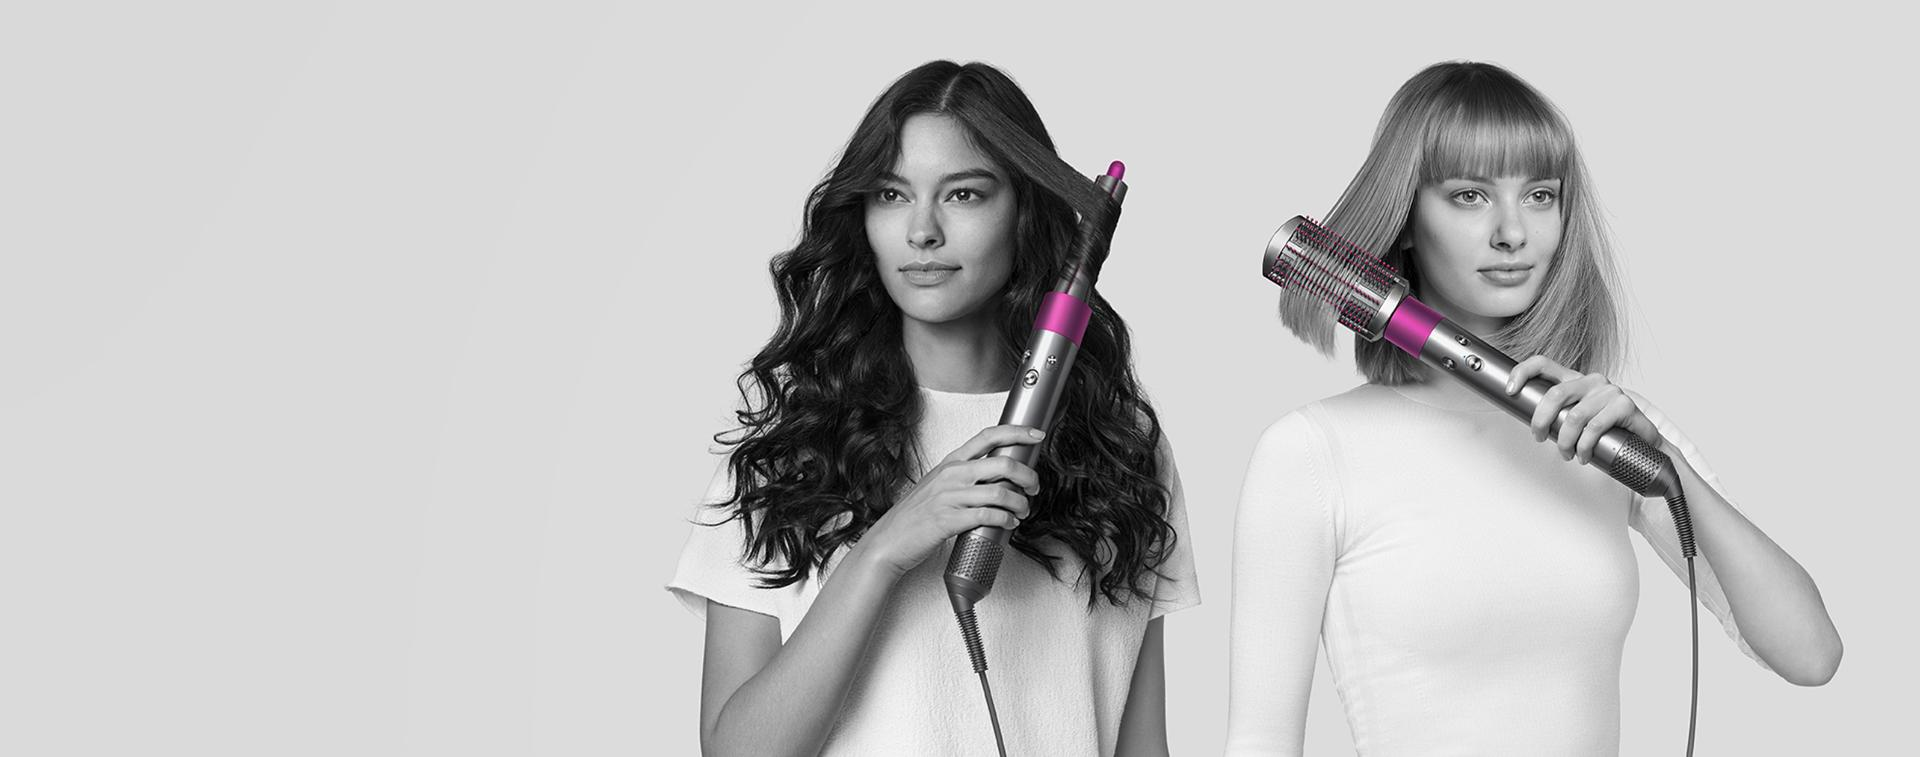 Models using the Dyson Airwrap styler